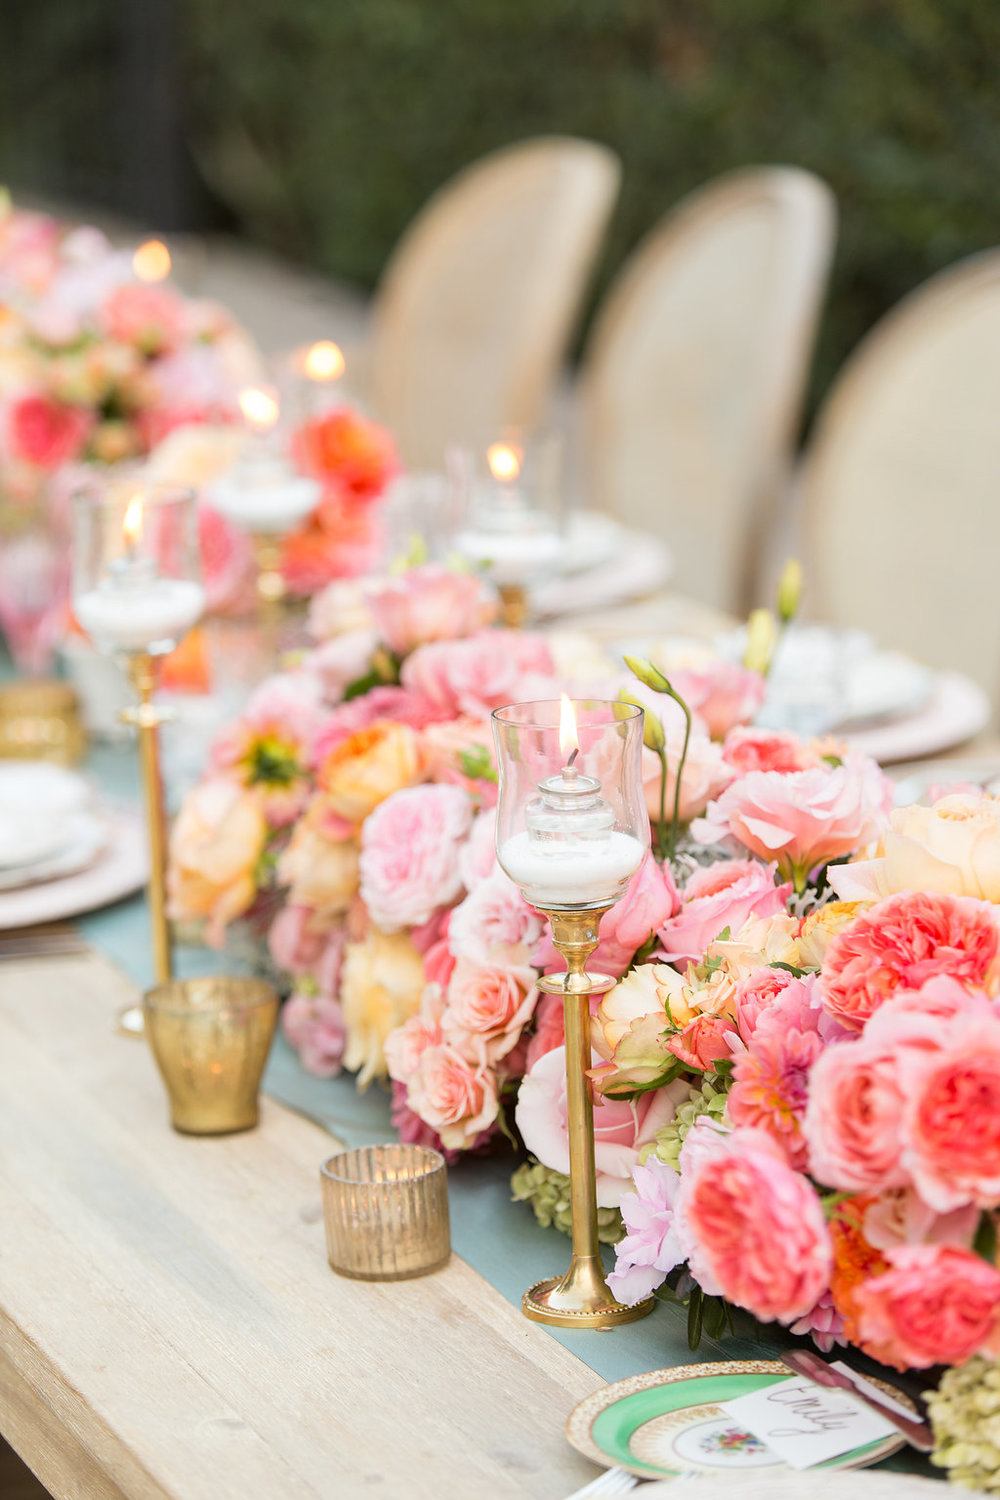 santabarbarawedding.com | Photo: Melissa Musgrove | Coral Garden Wedding Inspiration